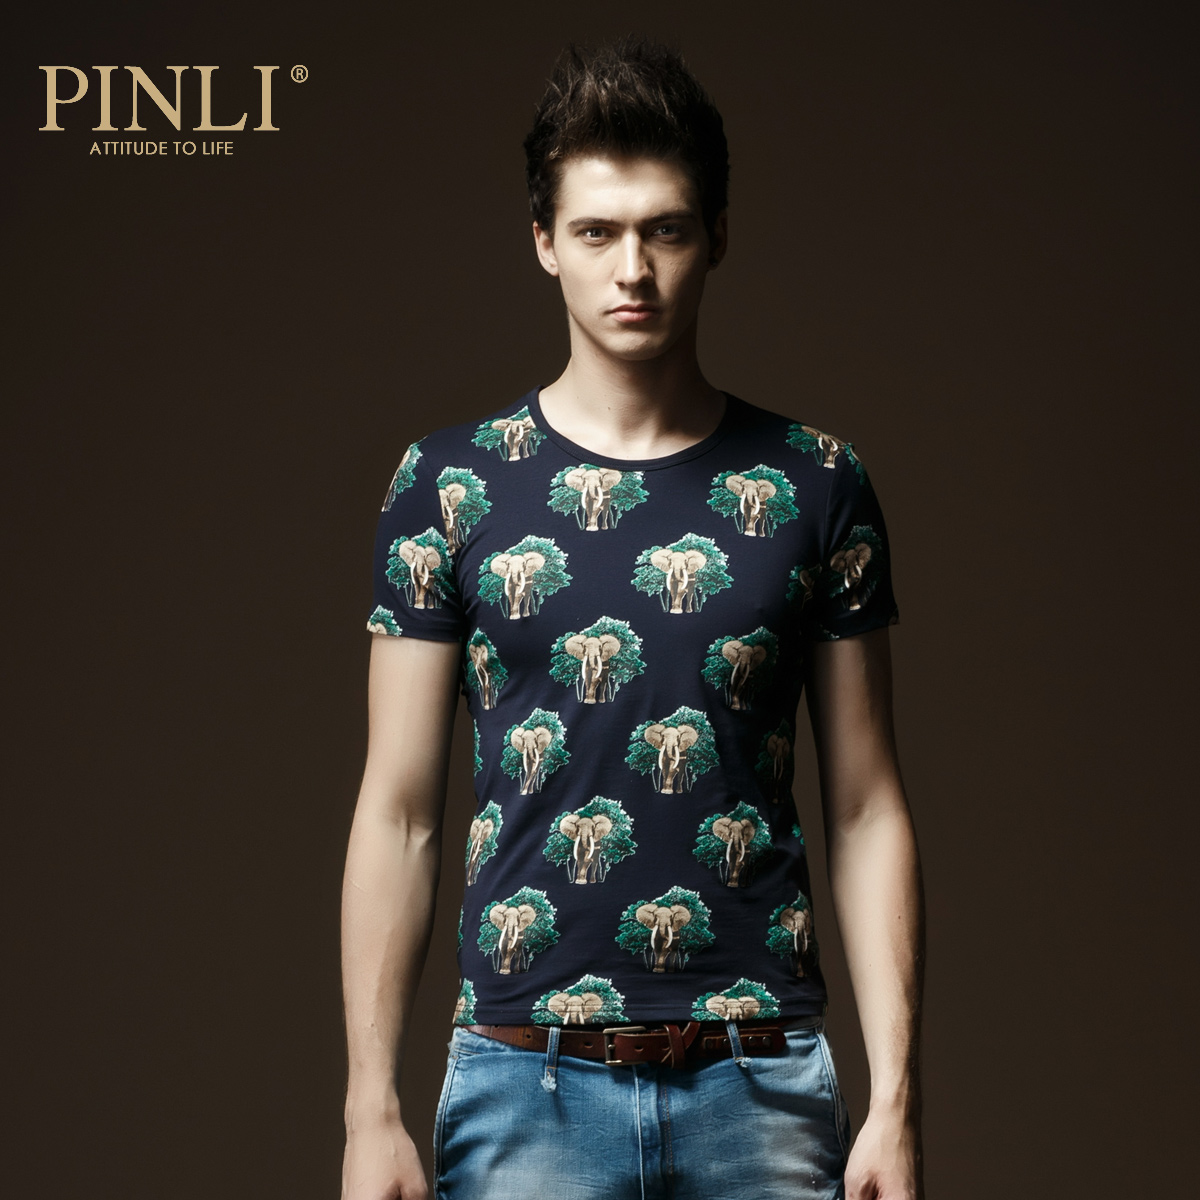 Pinli products stand 2015 new spring and summer men's fashion slim round neck short sleeve t-shirt men bottoming shirt tide 3757